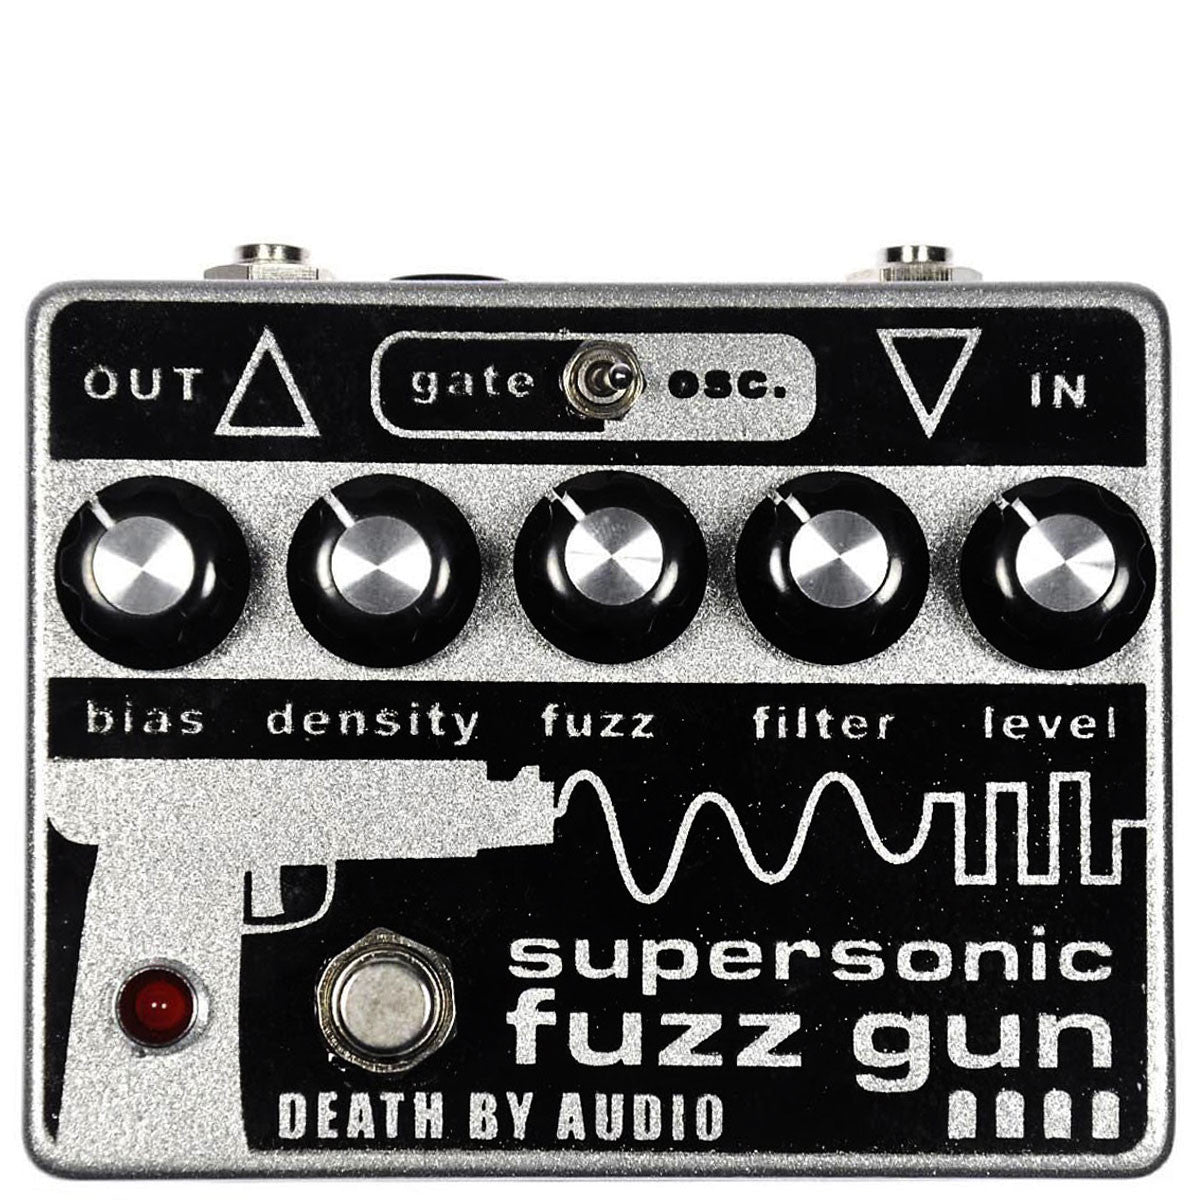 Death By Audio Supersonic Fuzz Gun | Lucky Fret Music Co.